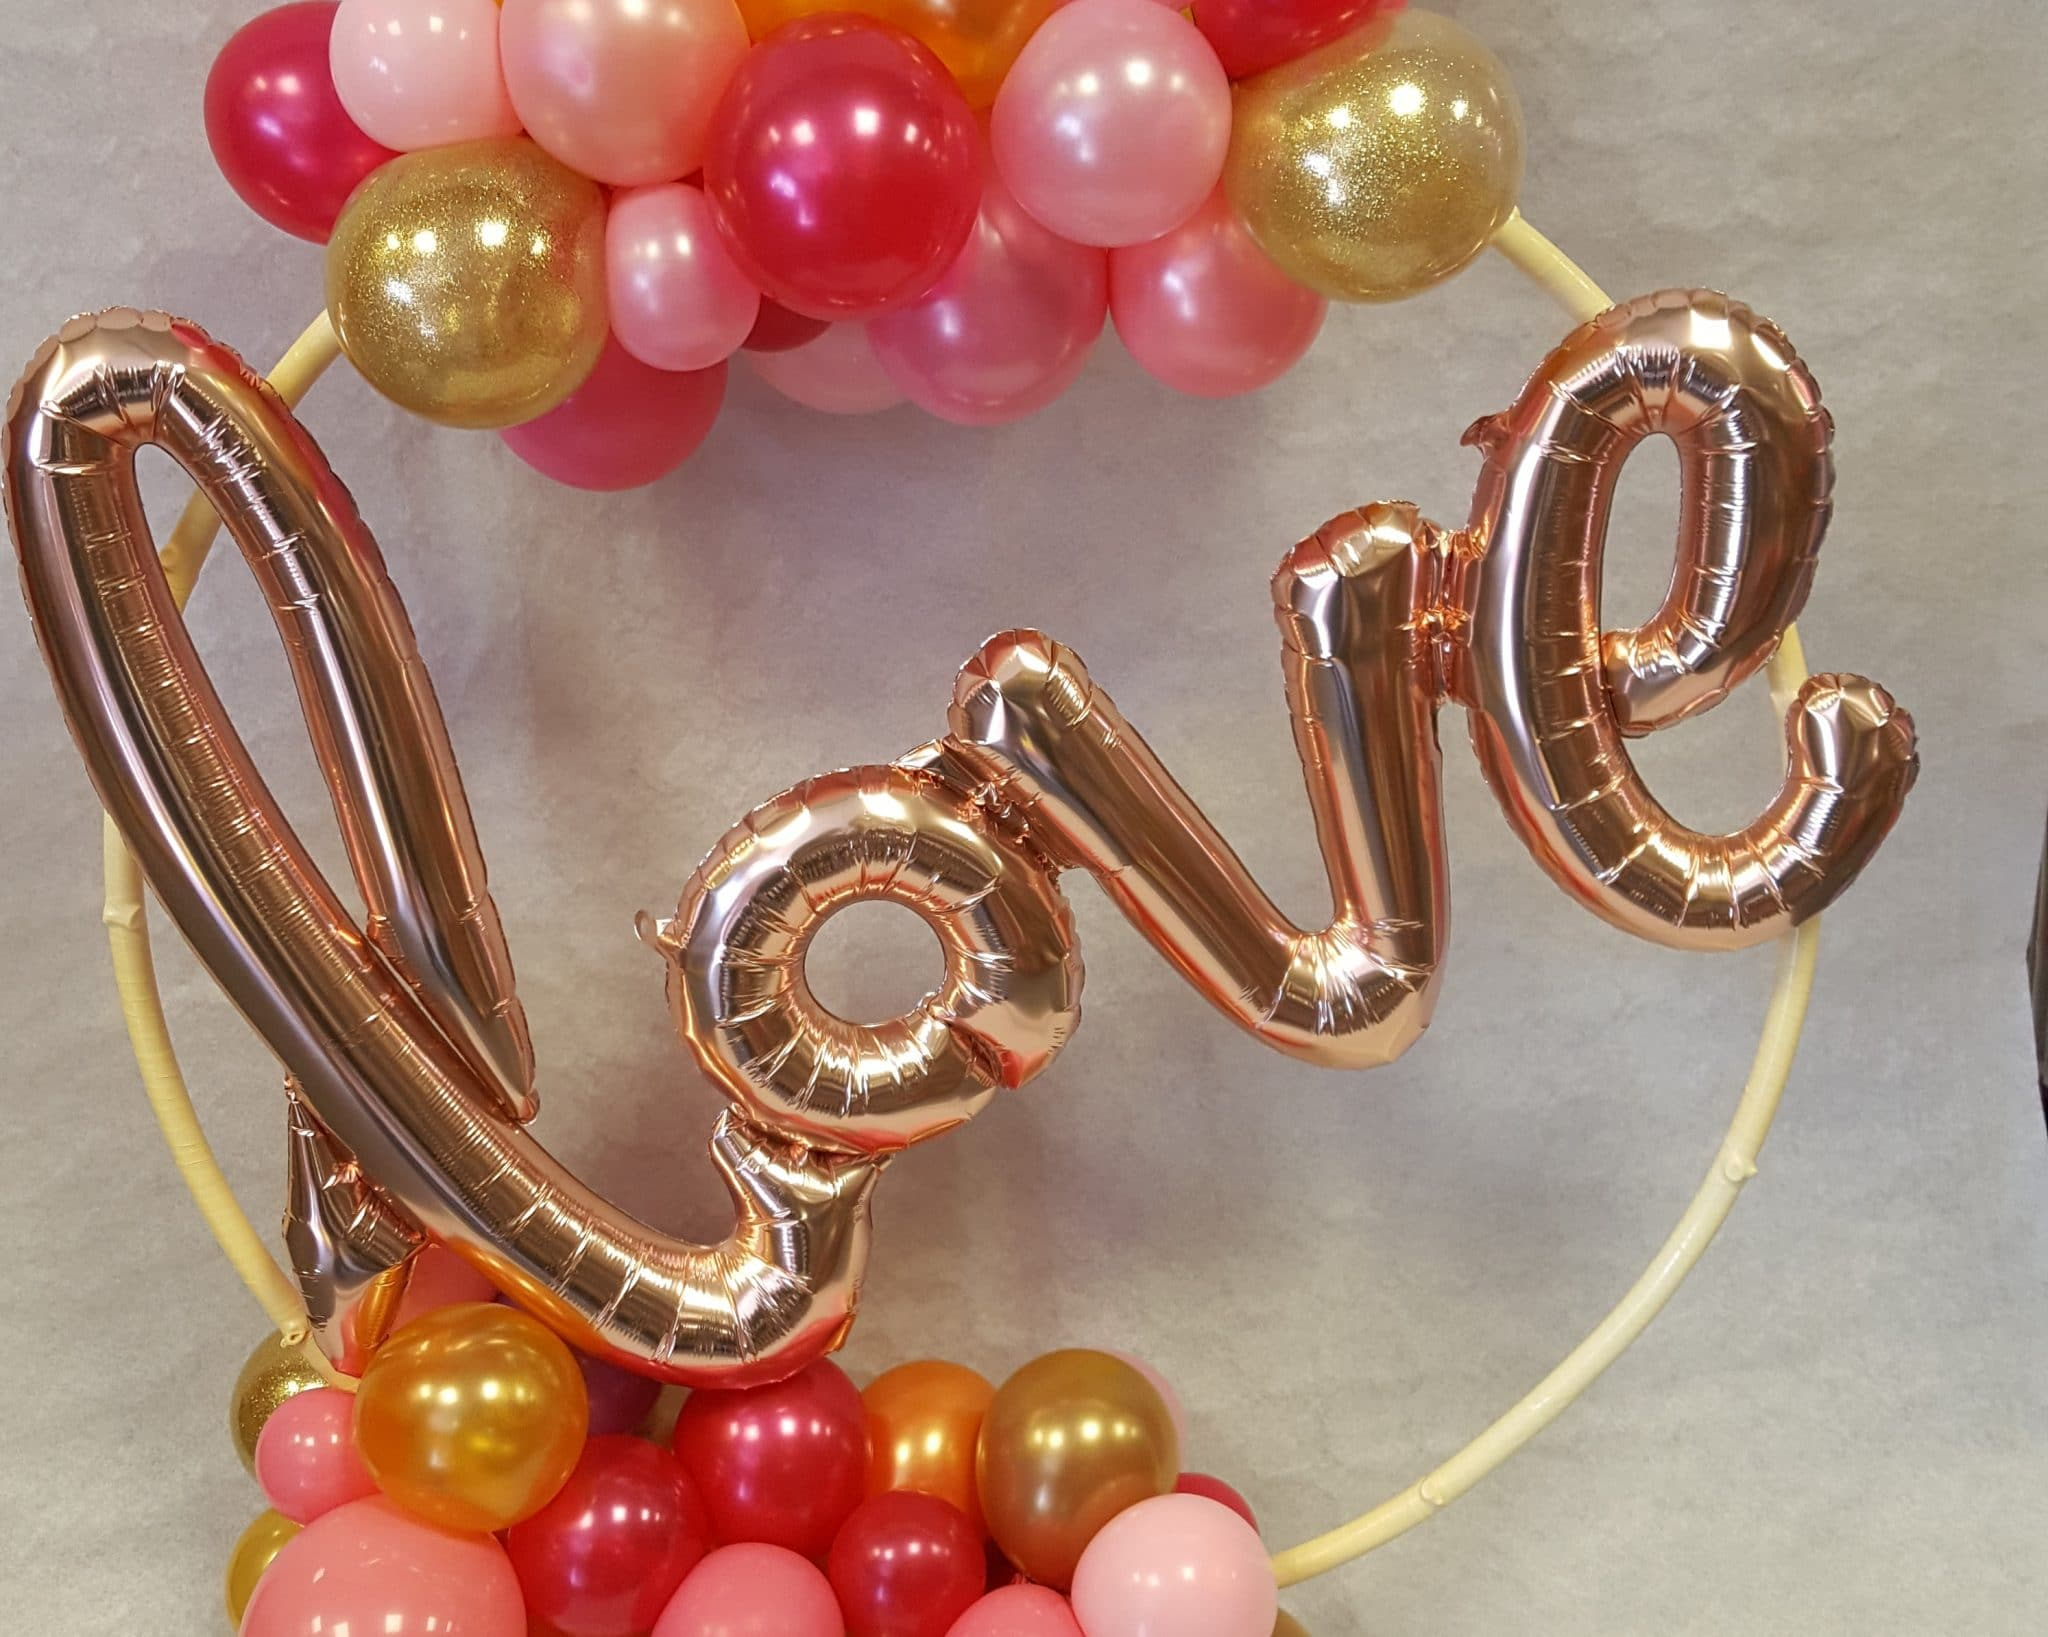 Balloons Barry Love Hoop By Cardiff Balloons